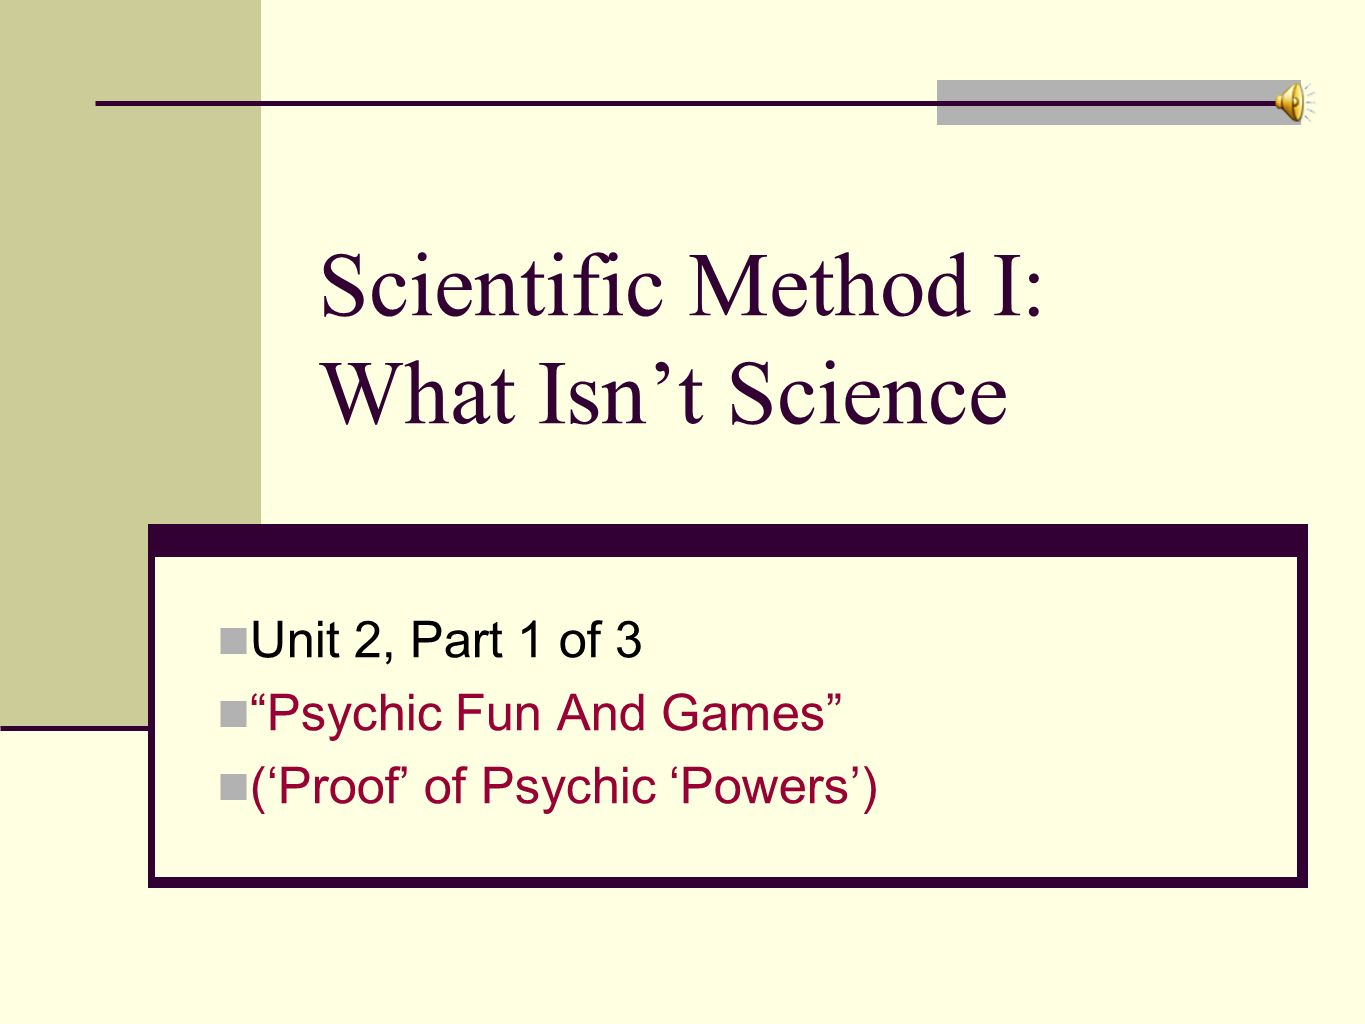 Scientific Method I: What Isn't Science